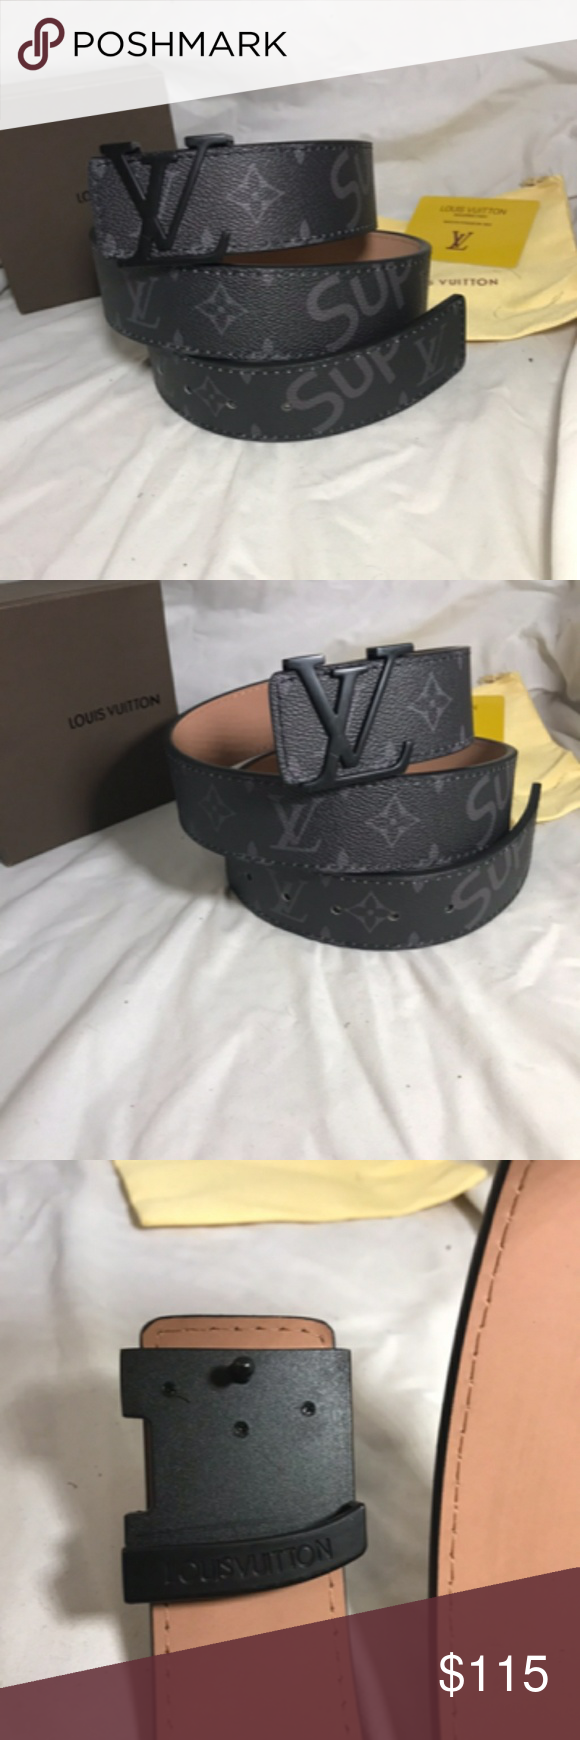 46d080e91d0b Black LV x Supreme Belt Size 34-36 Brand New With Box You get what you  see.. Louis Vuitton Accessories Belts